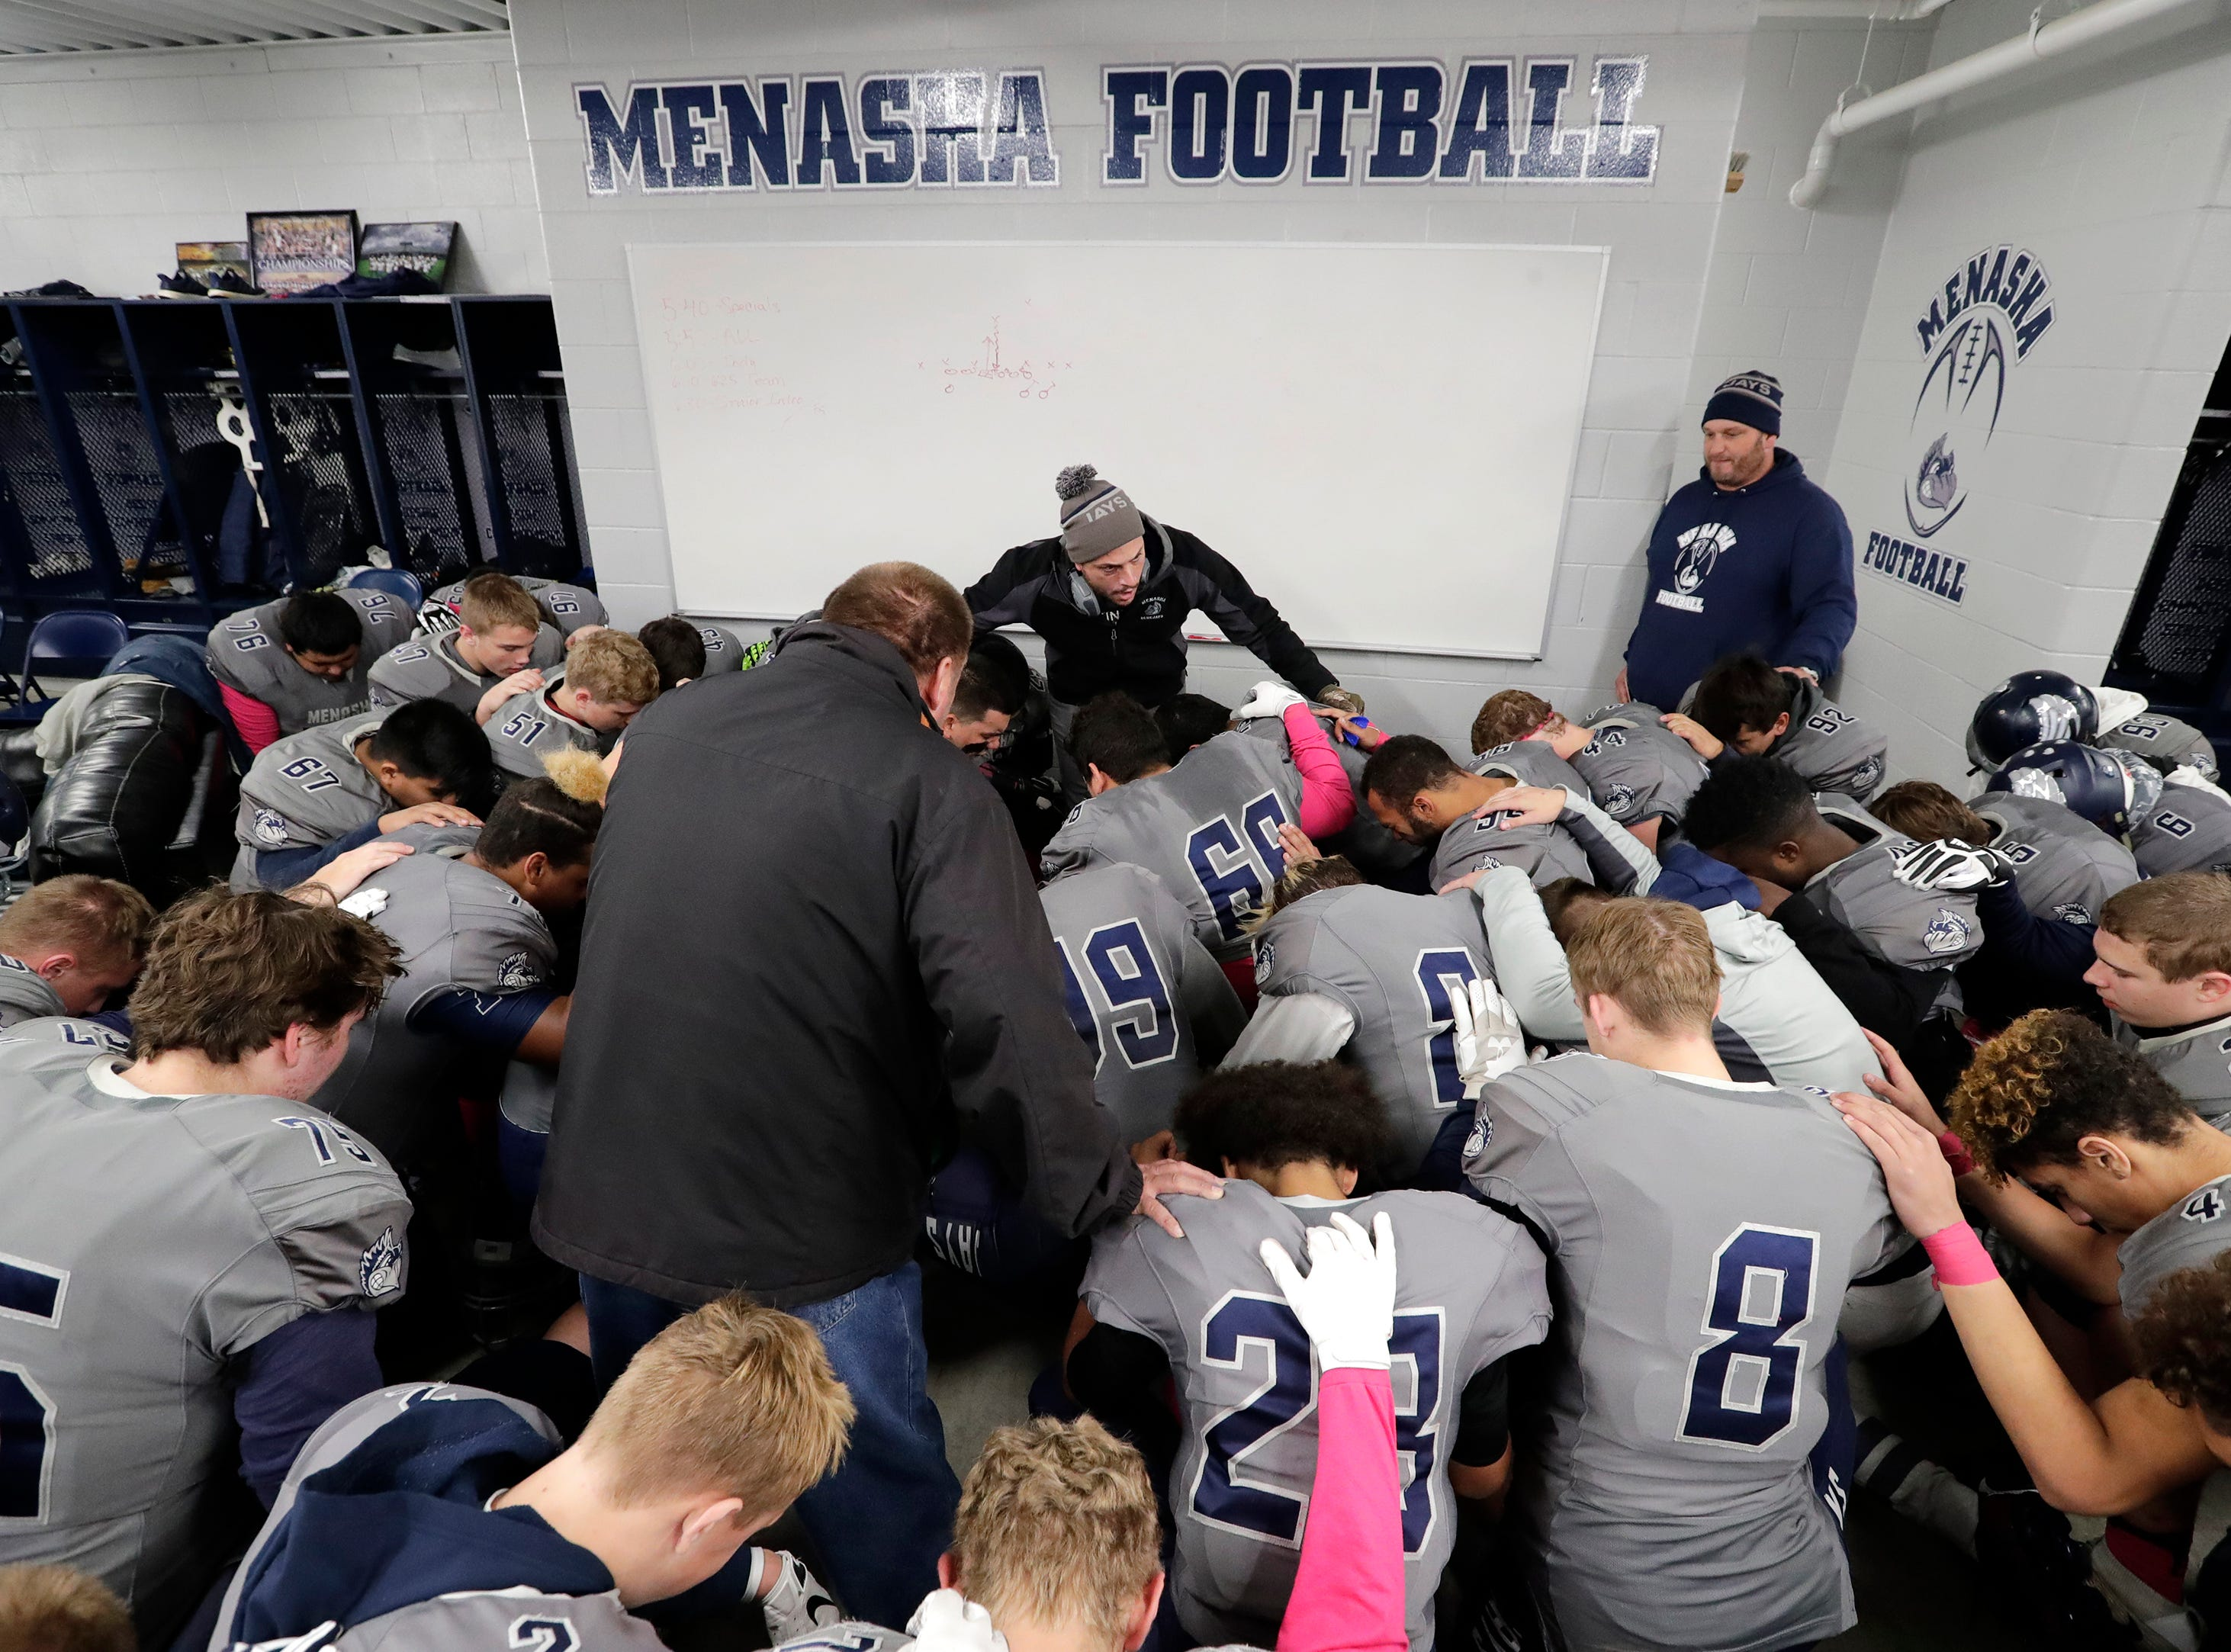 Menasha High School's players and coaches take a moment together before taking to the field against Hortonville High School during their WIAA Division 2 football playoff game Friday, Oct. 19, 2018, at Calder Stadium in Menasha, Wis. 